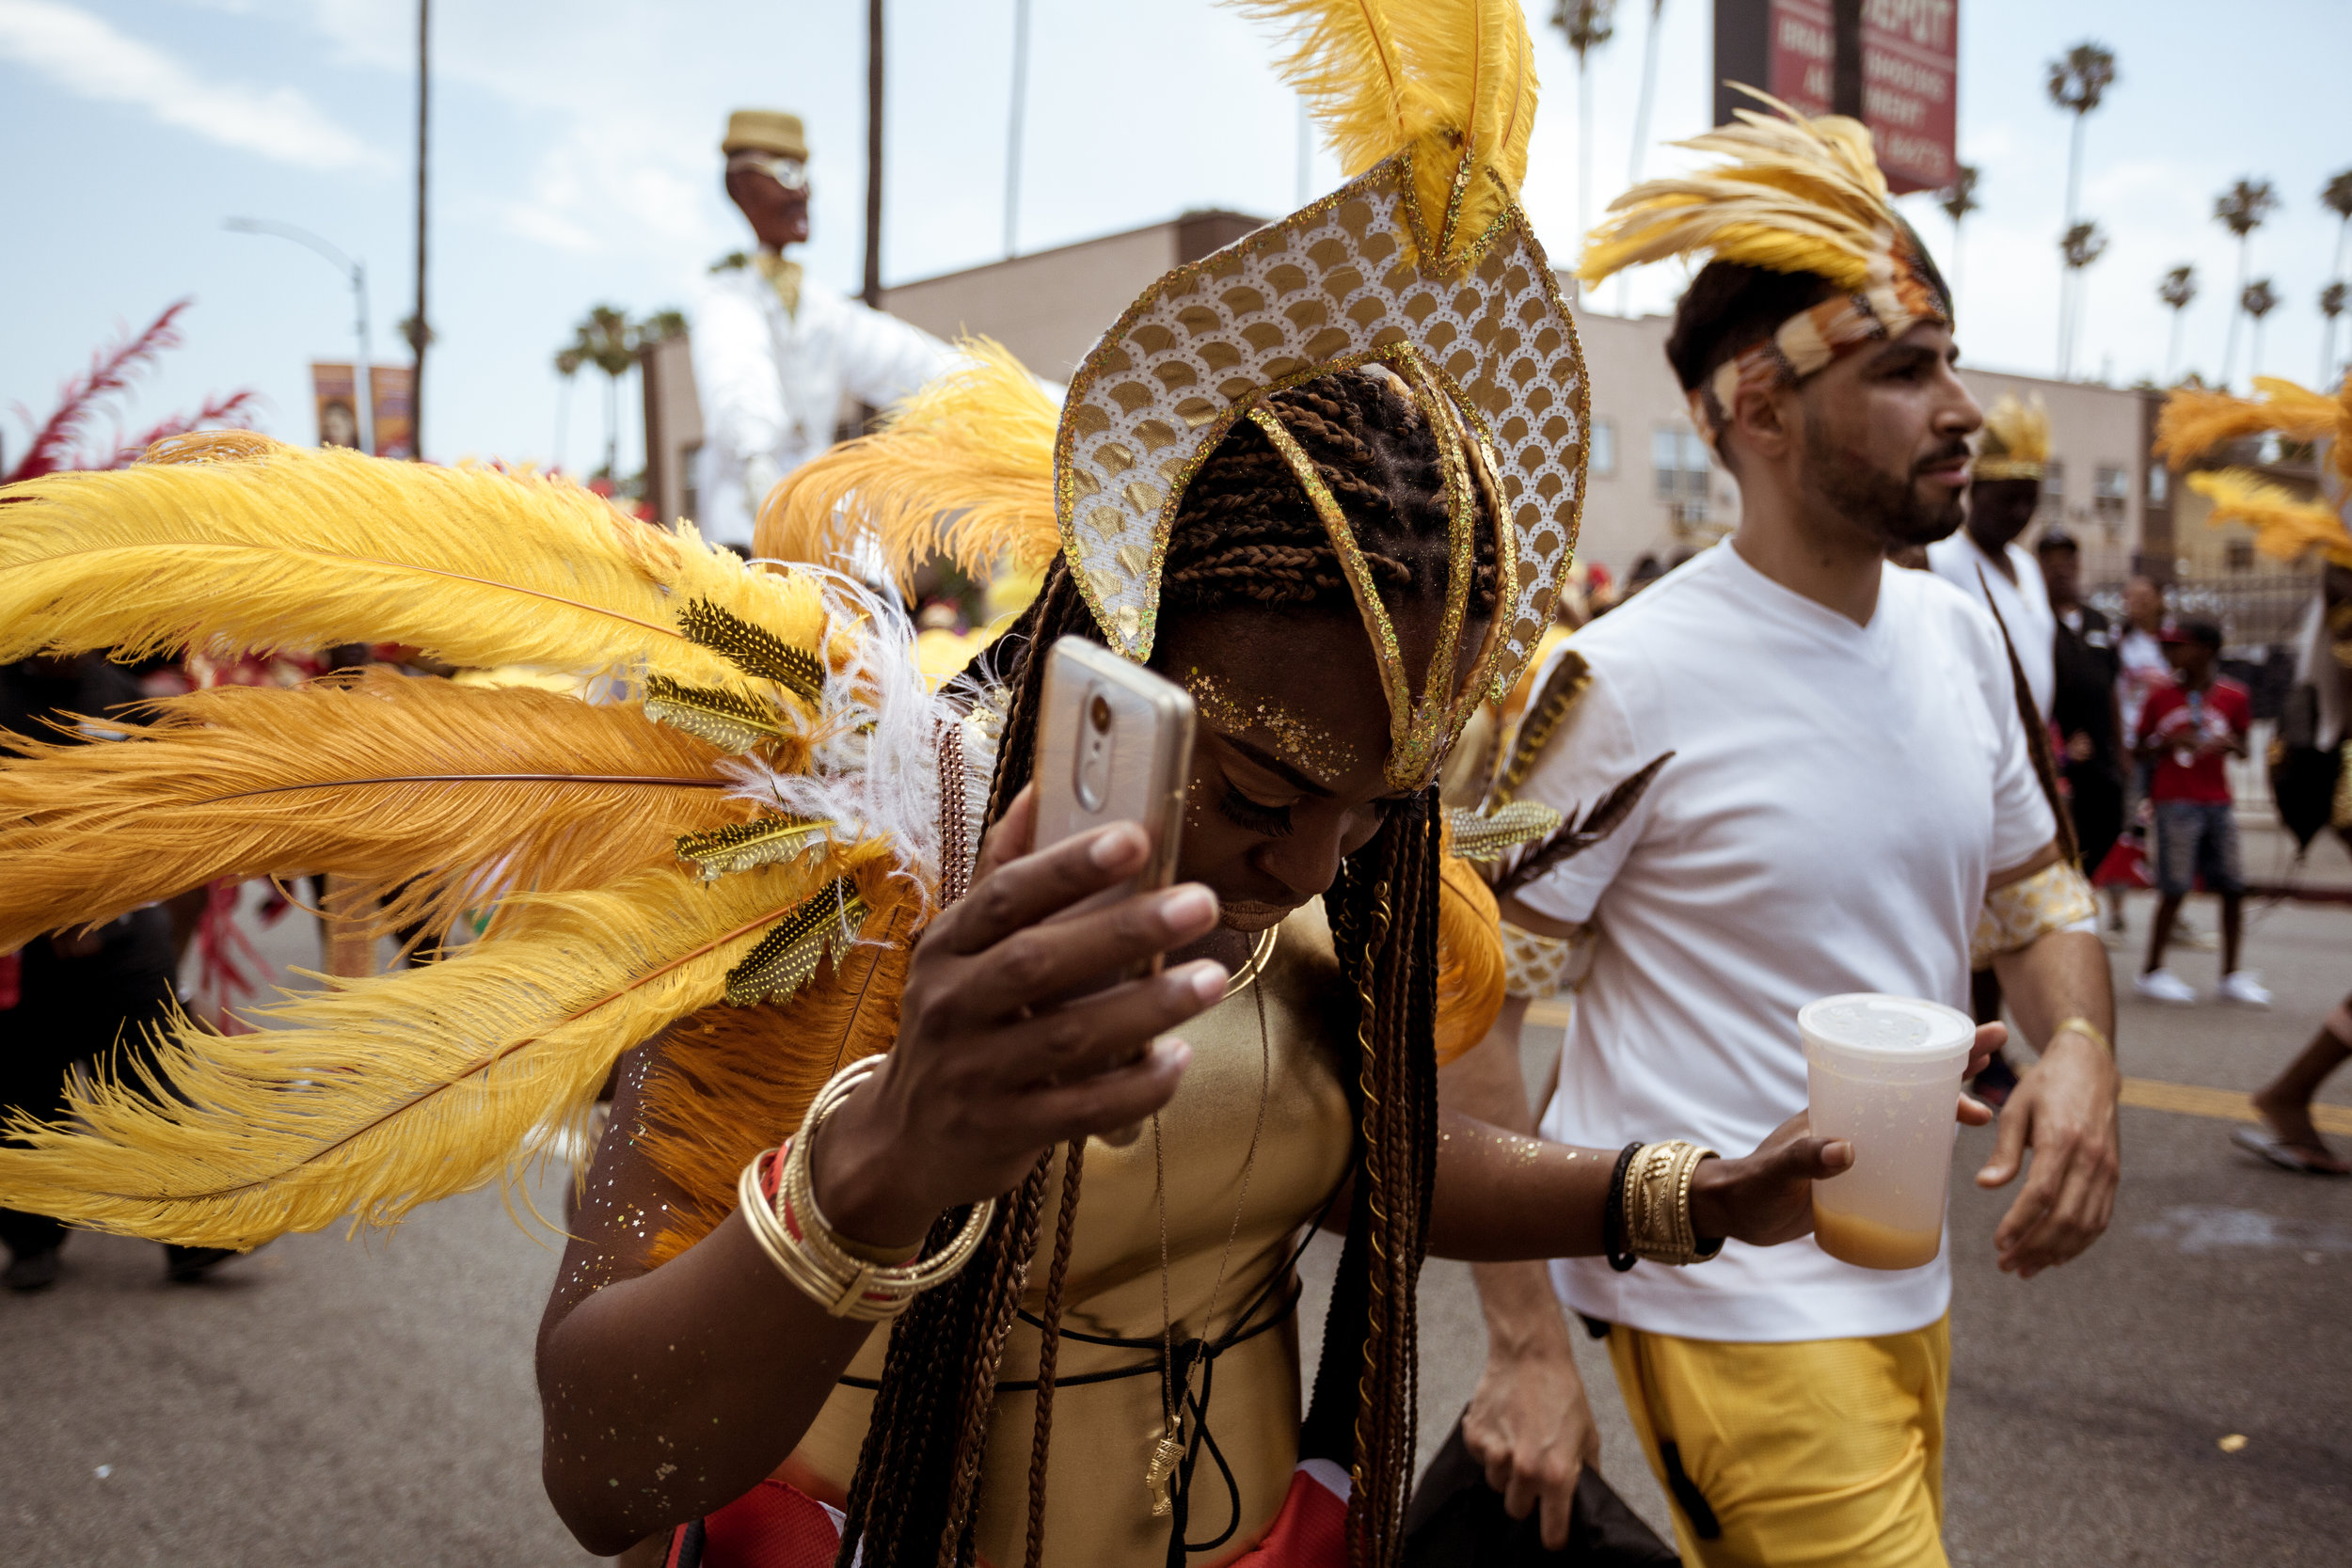 Chacon Images_Carnaval_Print-5860.jpg